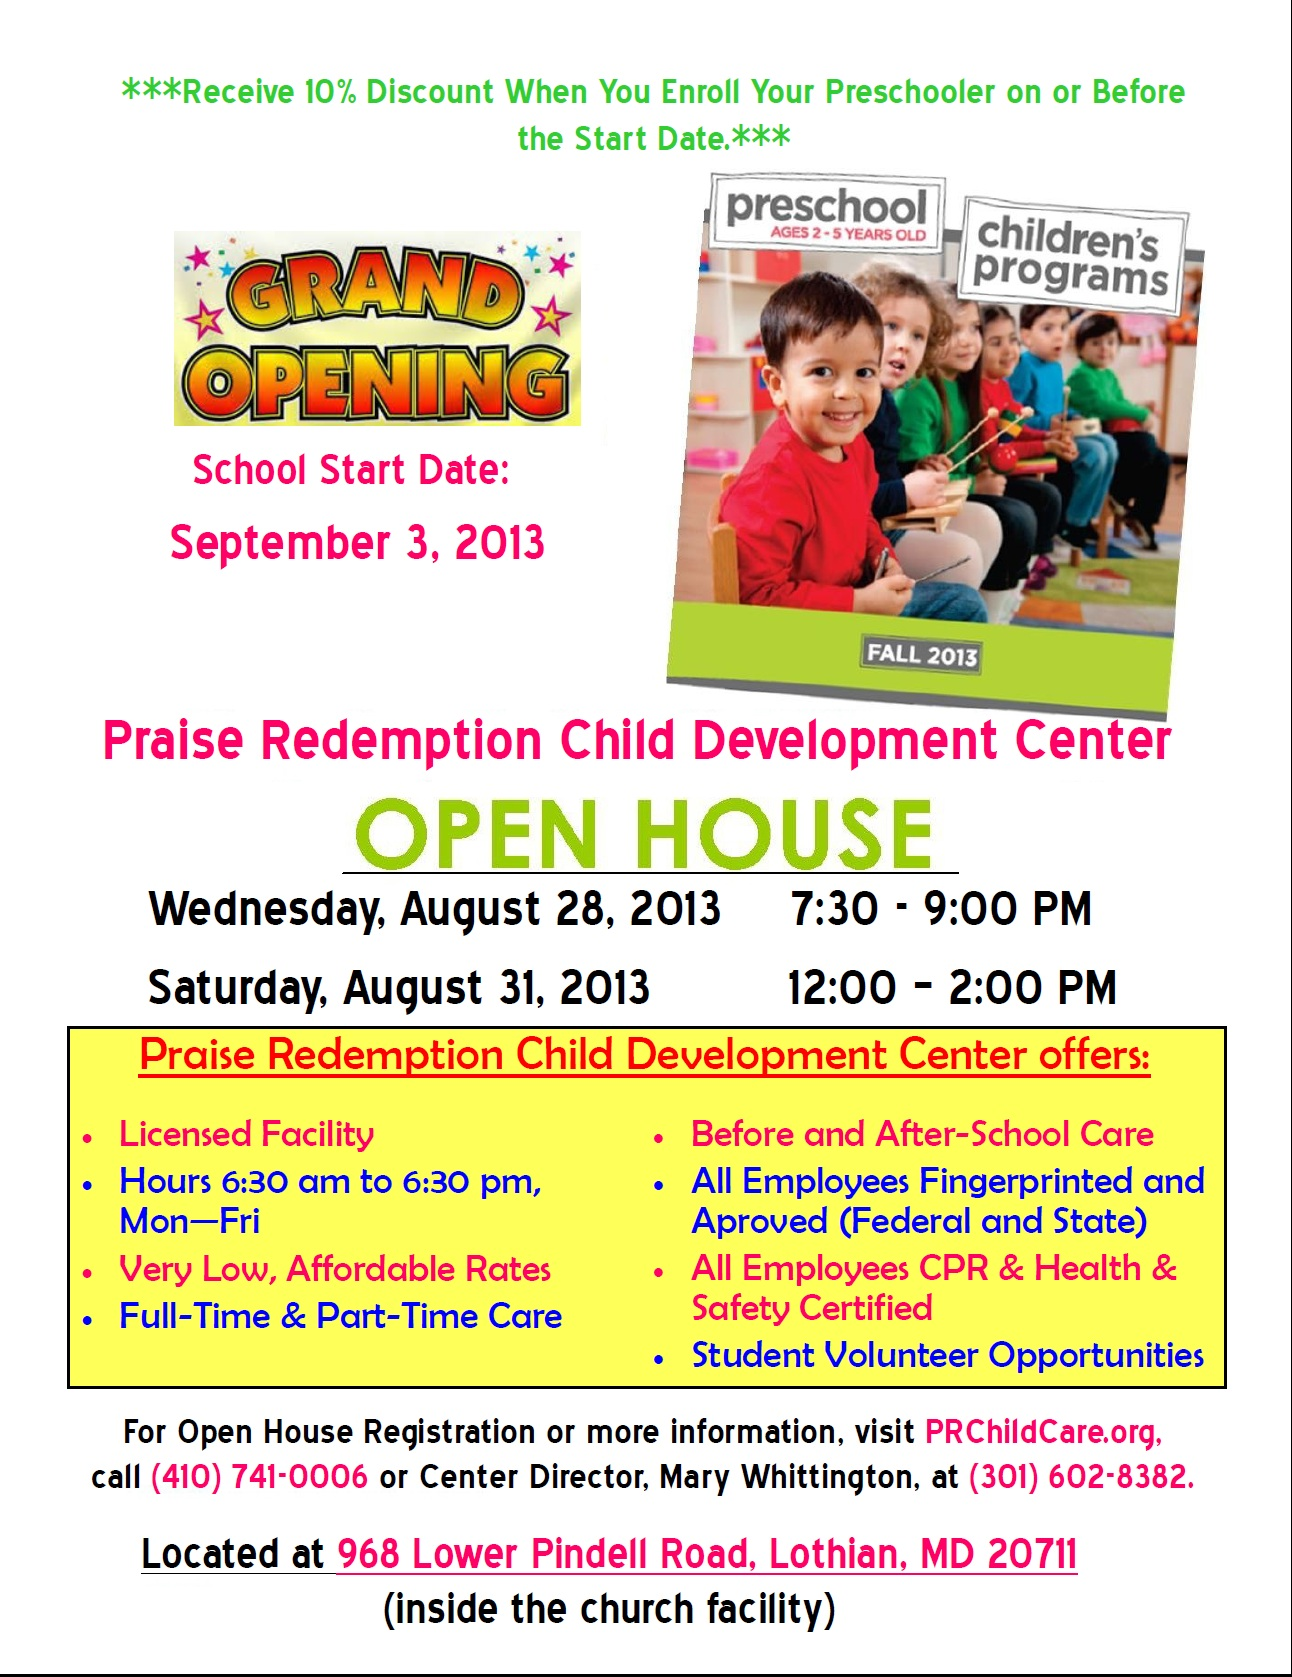 praise redemption child development center lothian md letter of open houses